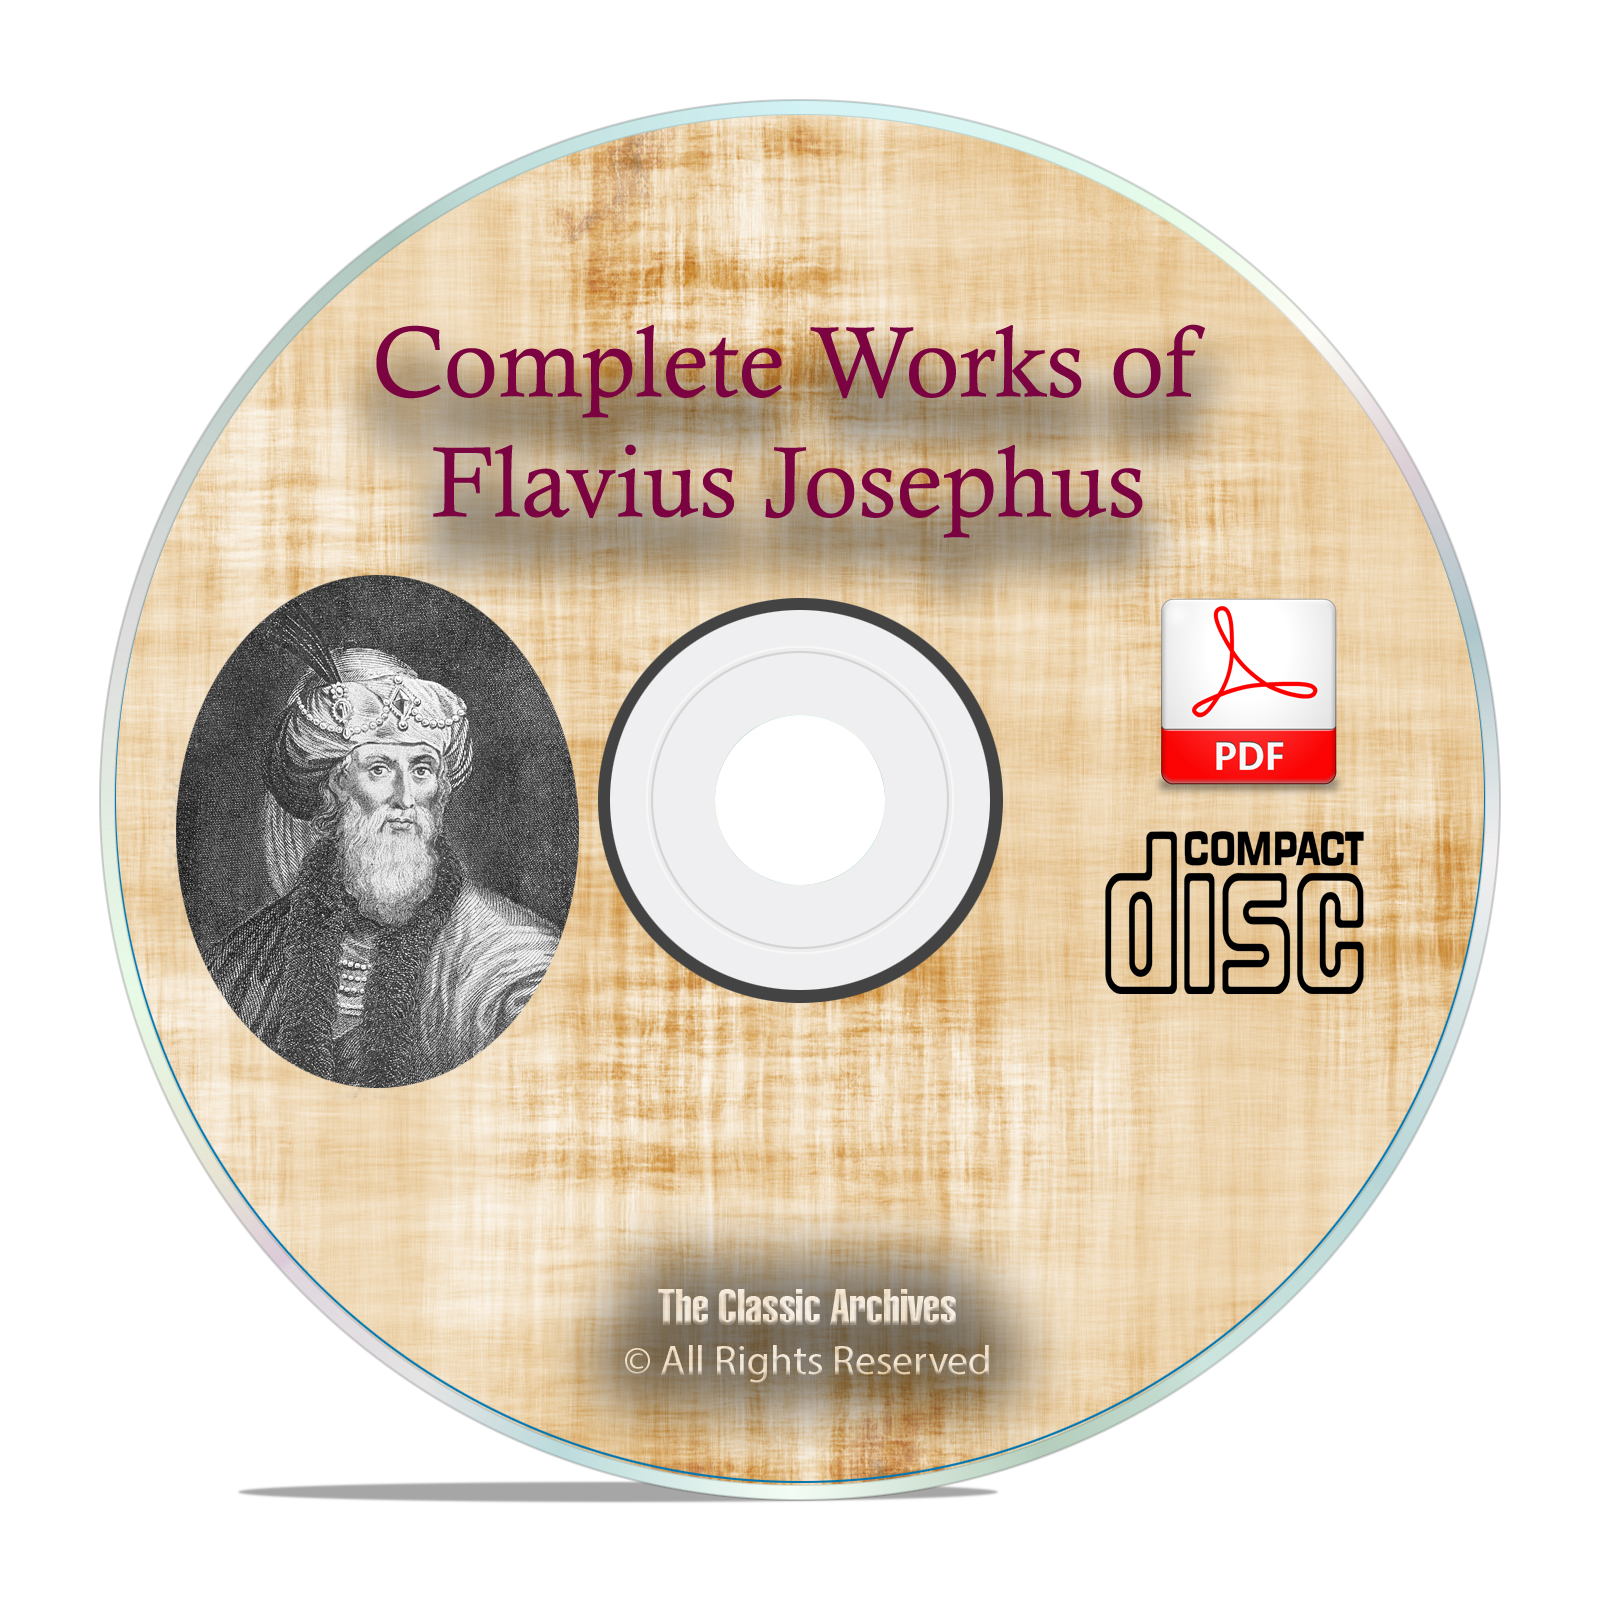 Complete Works, Flavius Josephus, Christian Church History, Jewish PDF CD